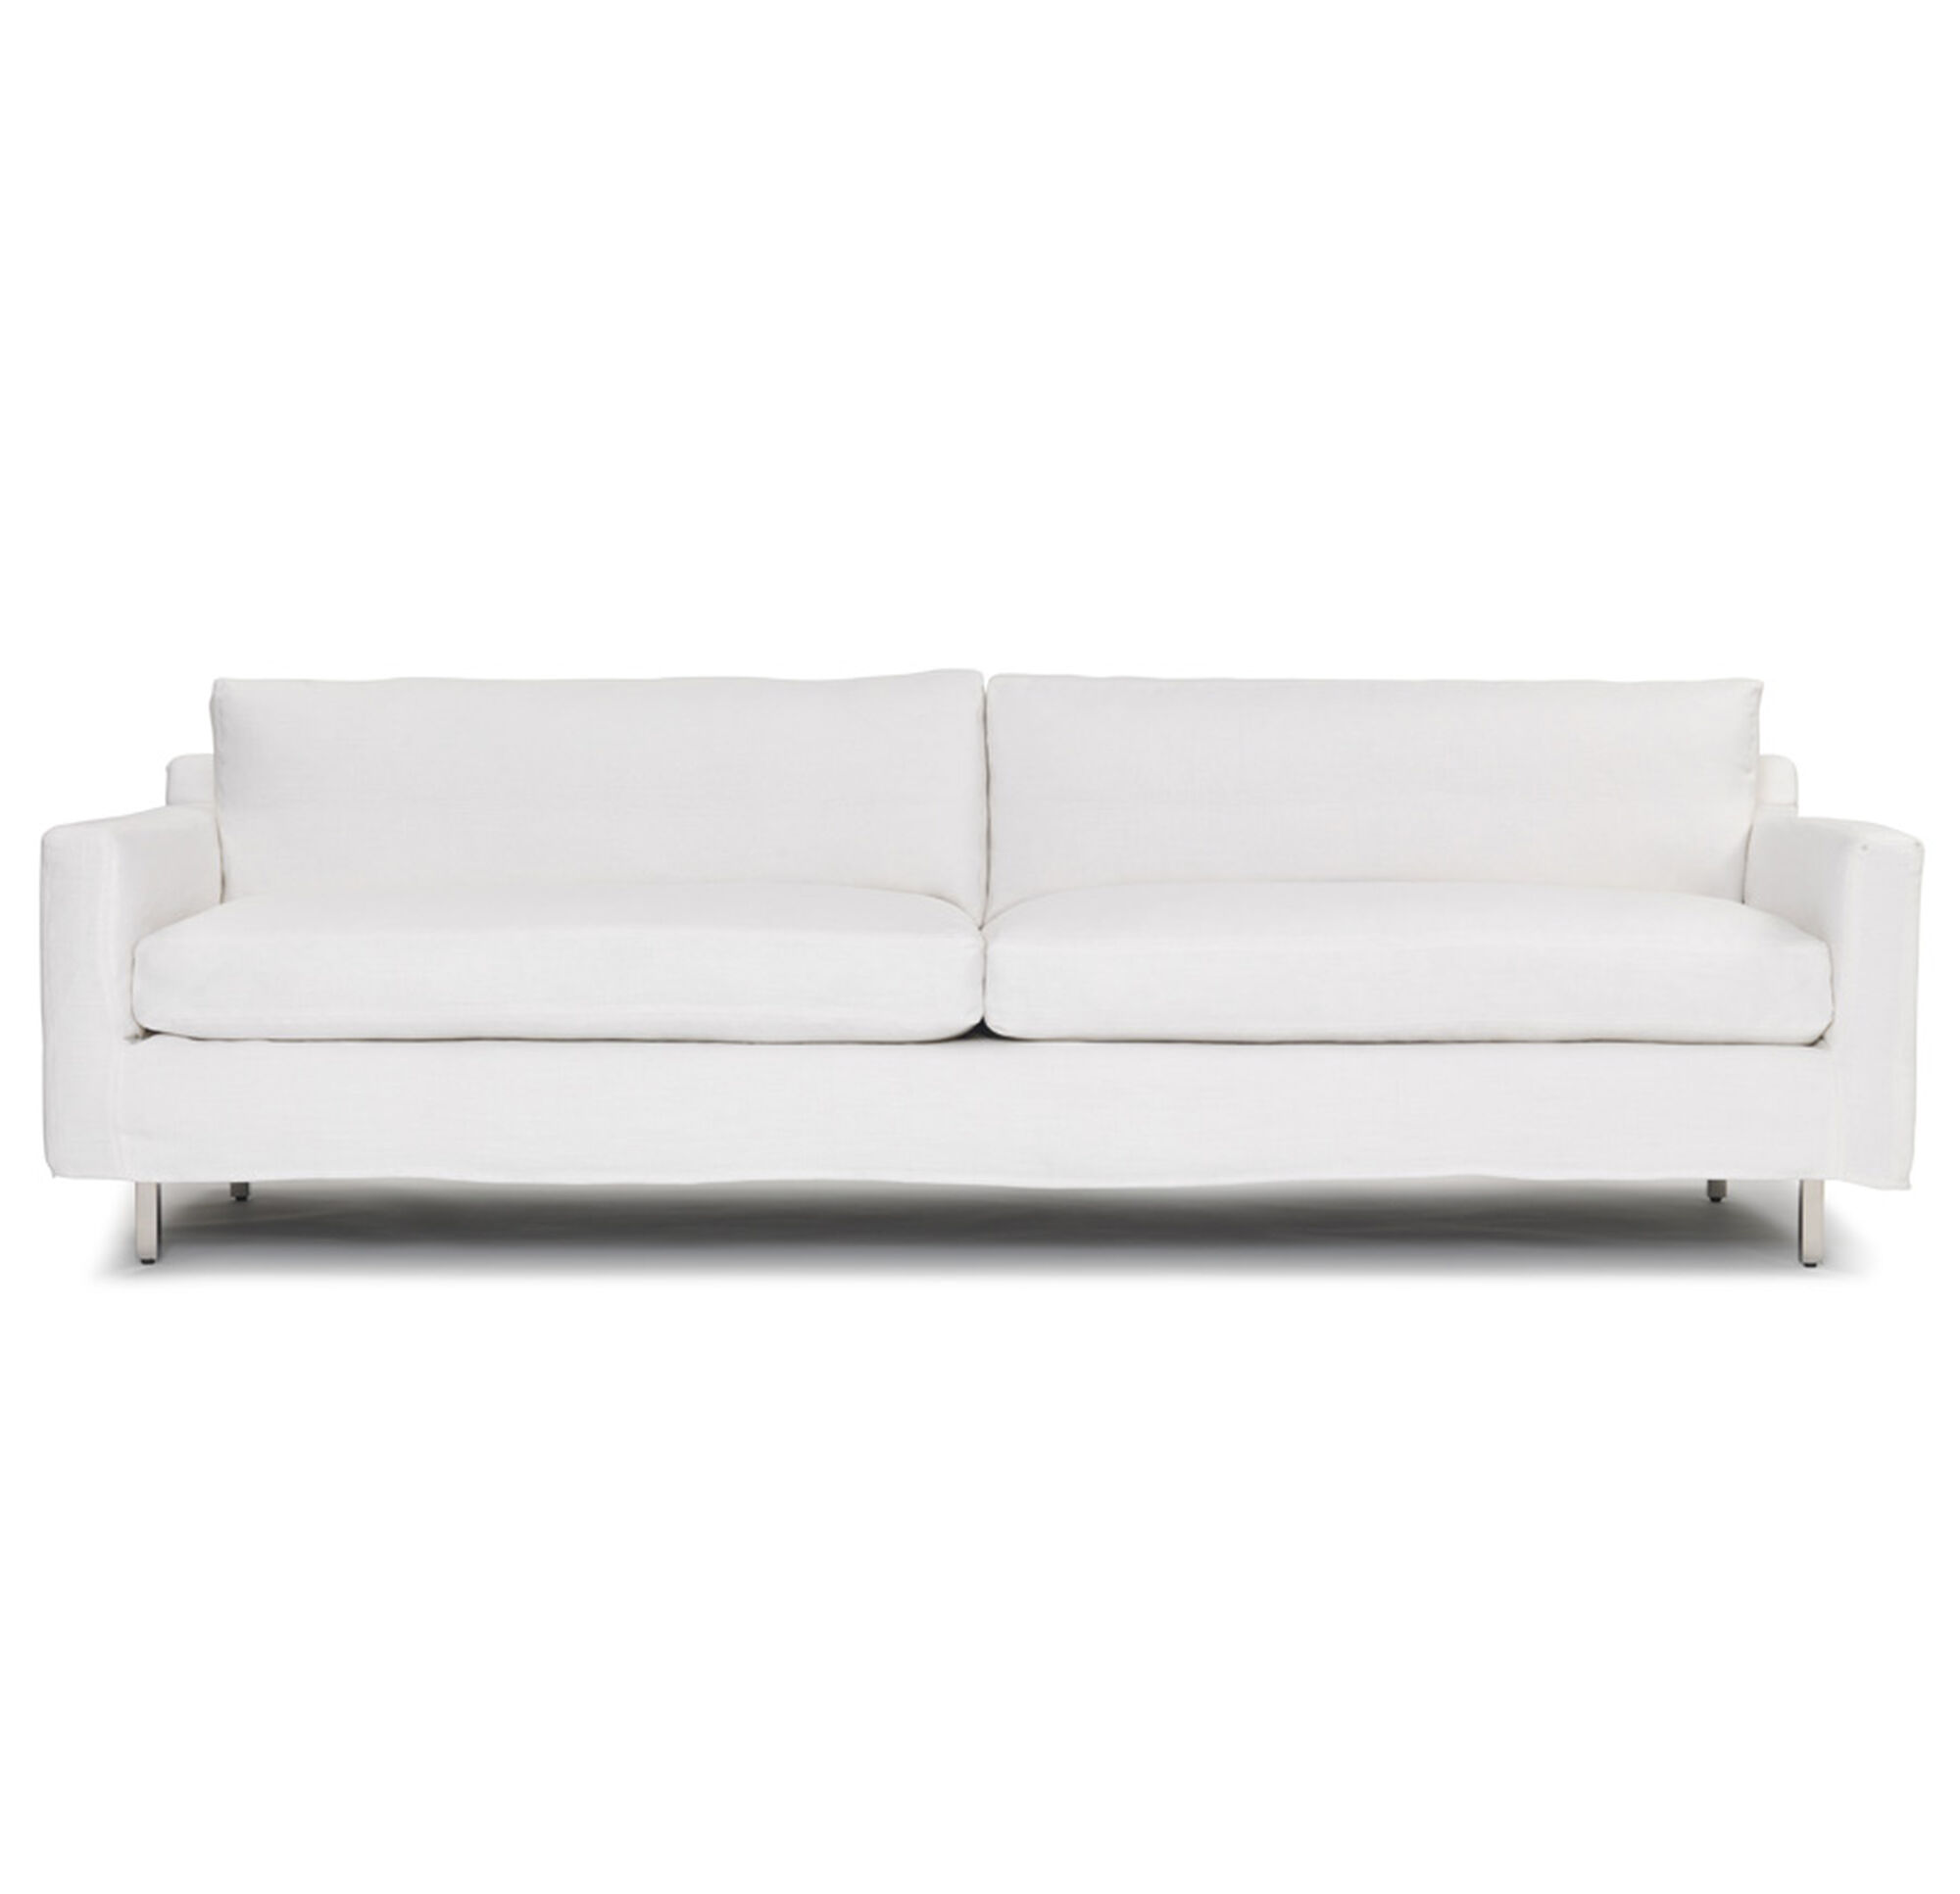 covered by home nat slip in cover sofa products natural couch hampton front slipcover spectra